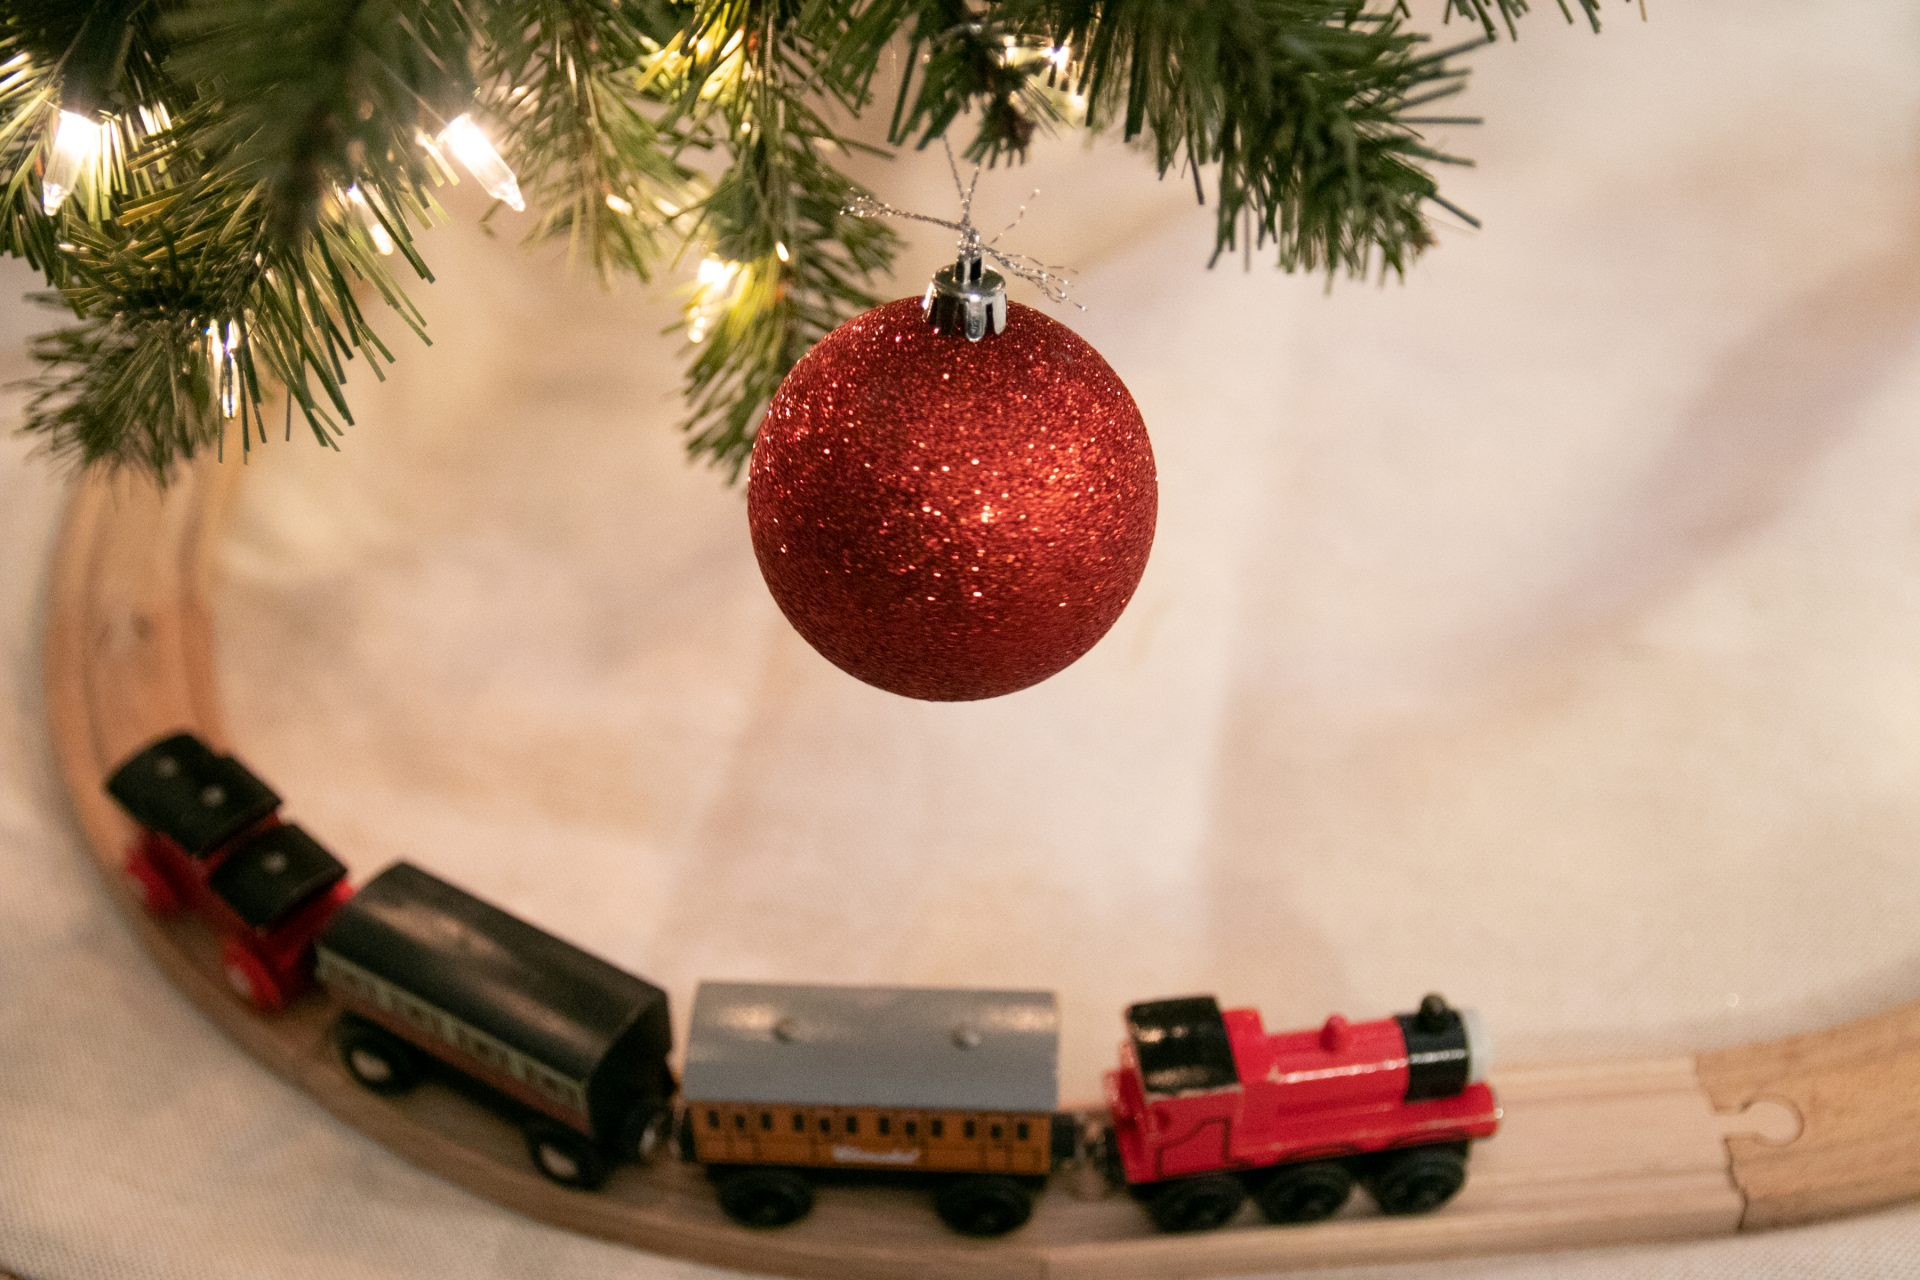 Toy Train On Tracks Below Hanging Red Bauble Ornament